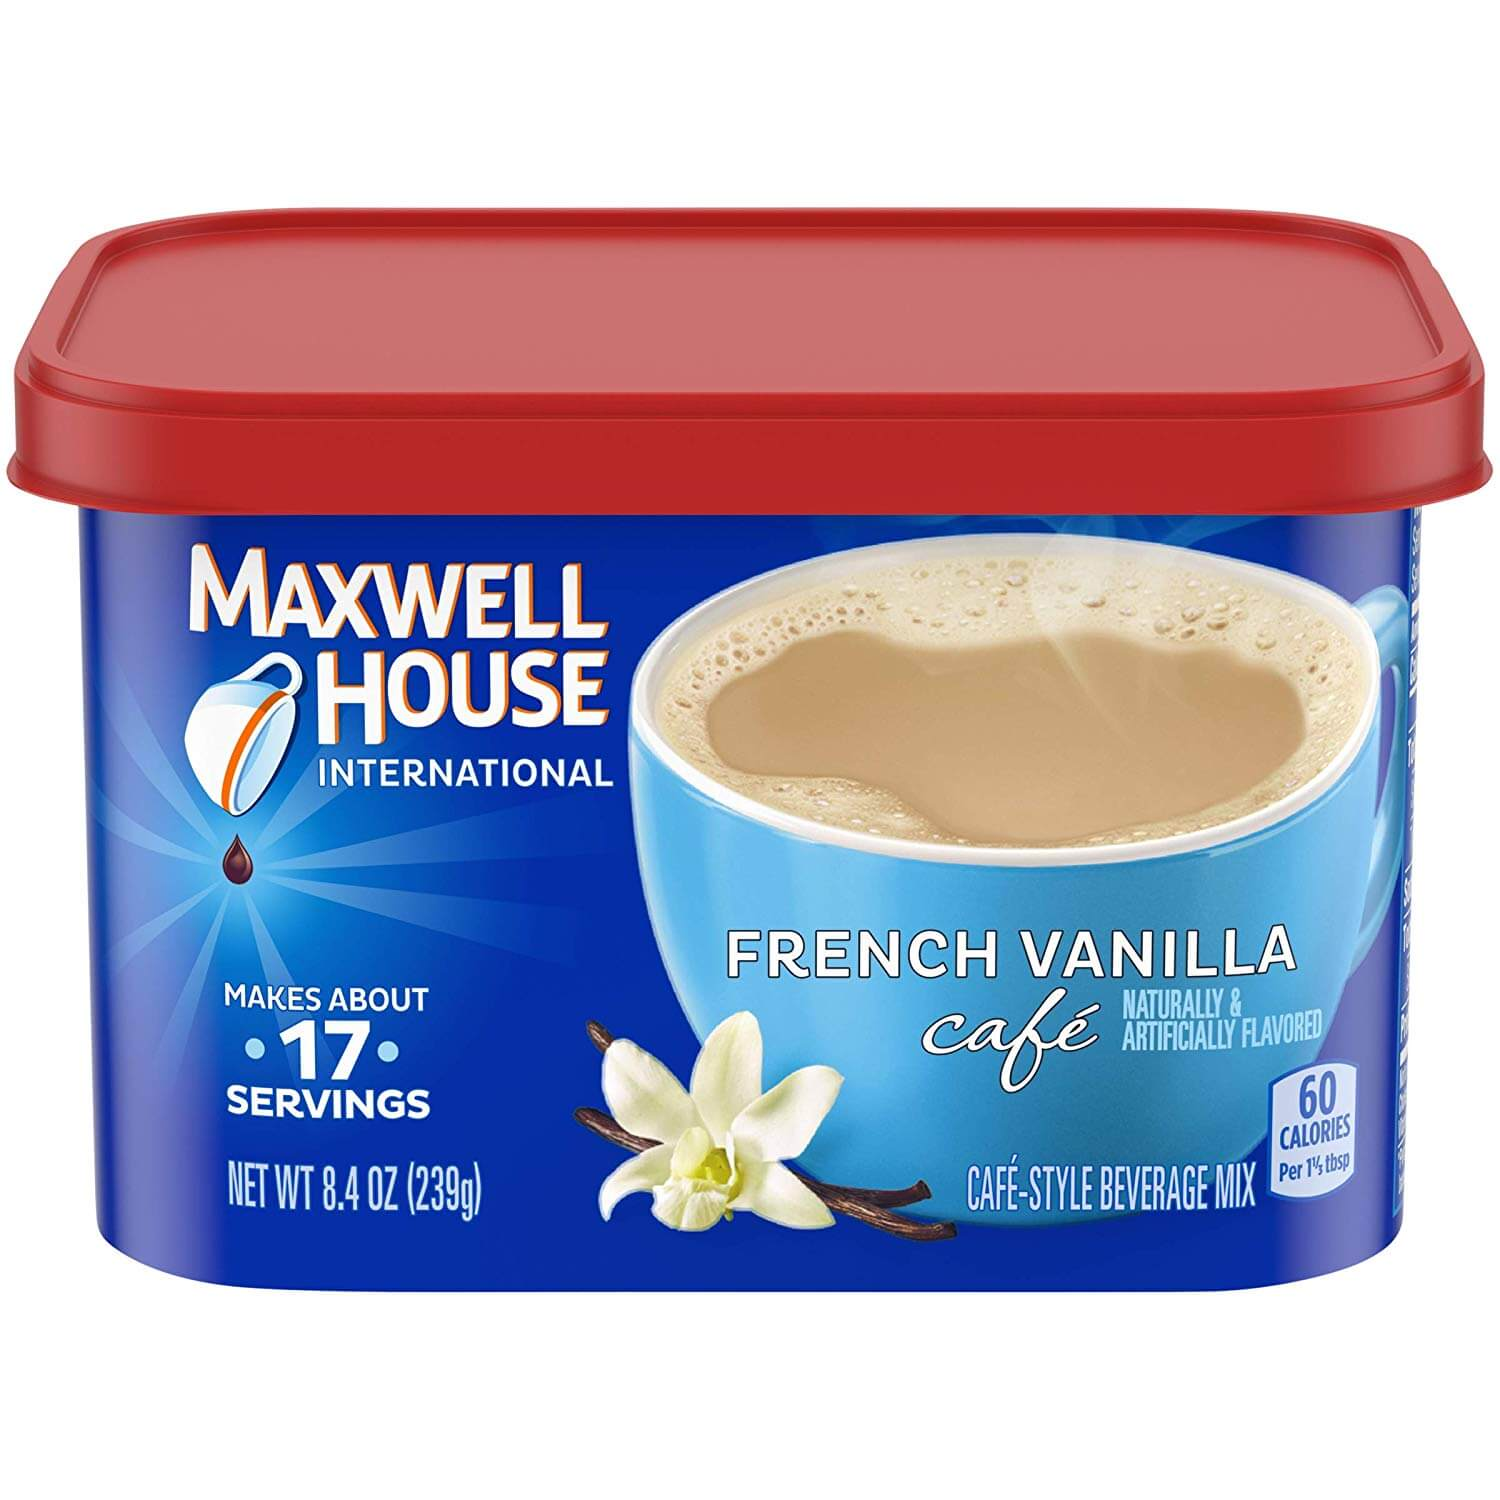 Maxwell House French Vanilla Coffee International Cafe